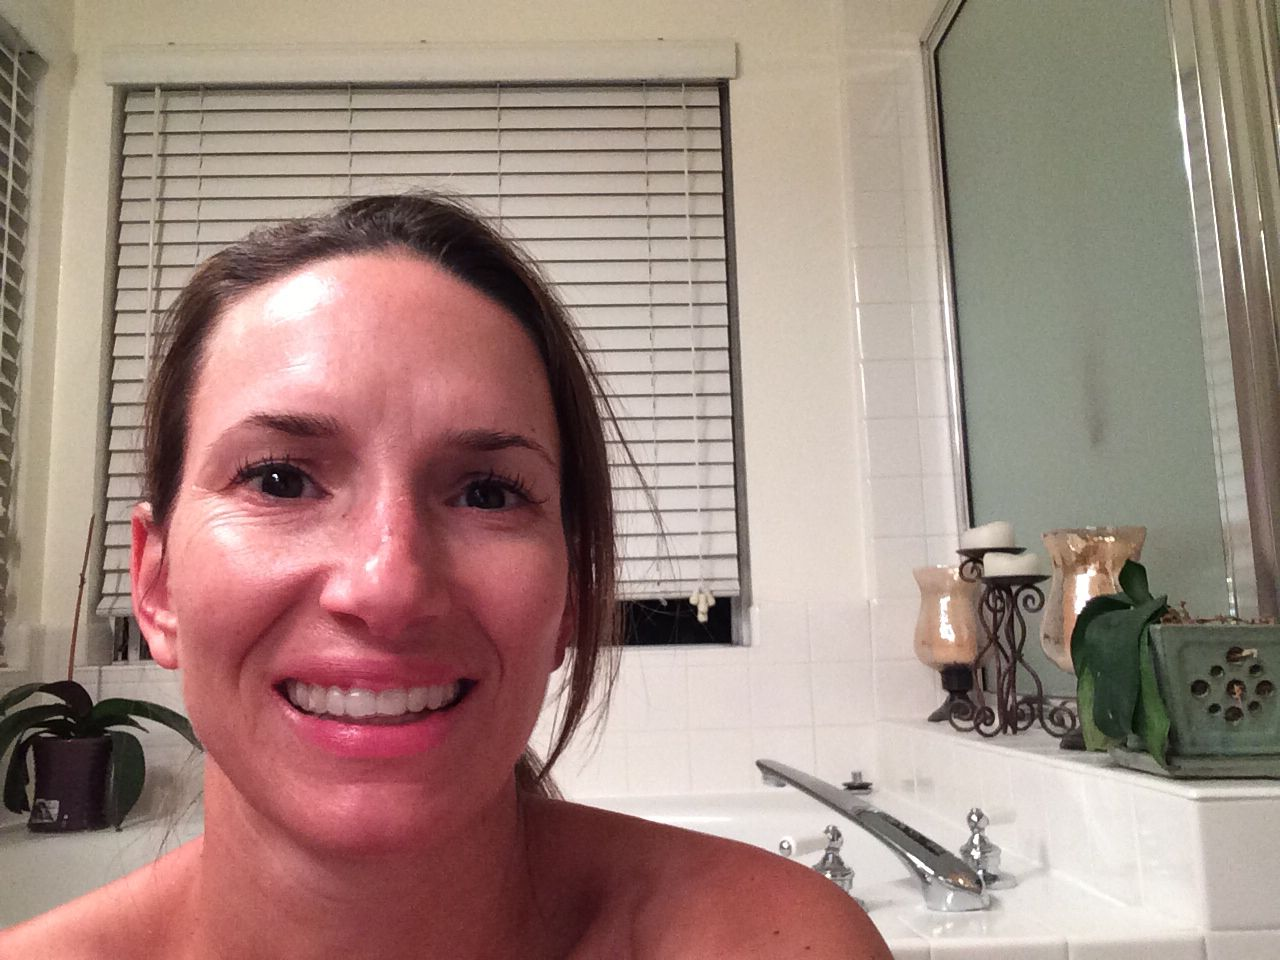 10/7 evening  Hydrocortisone cream saved the day! I read the